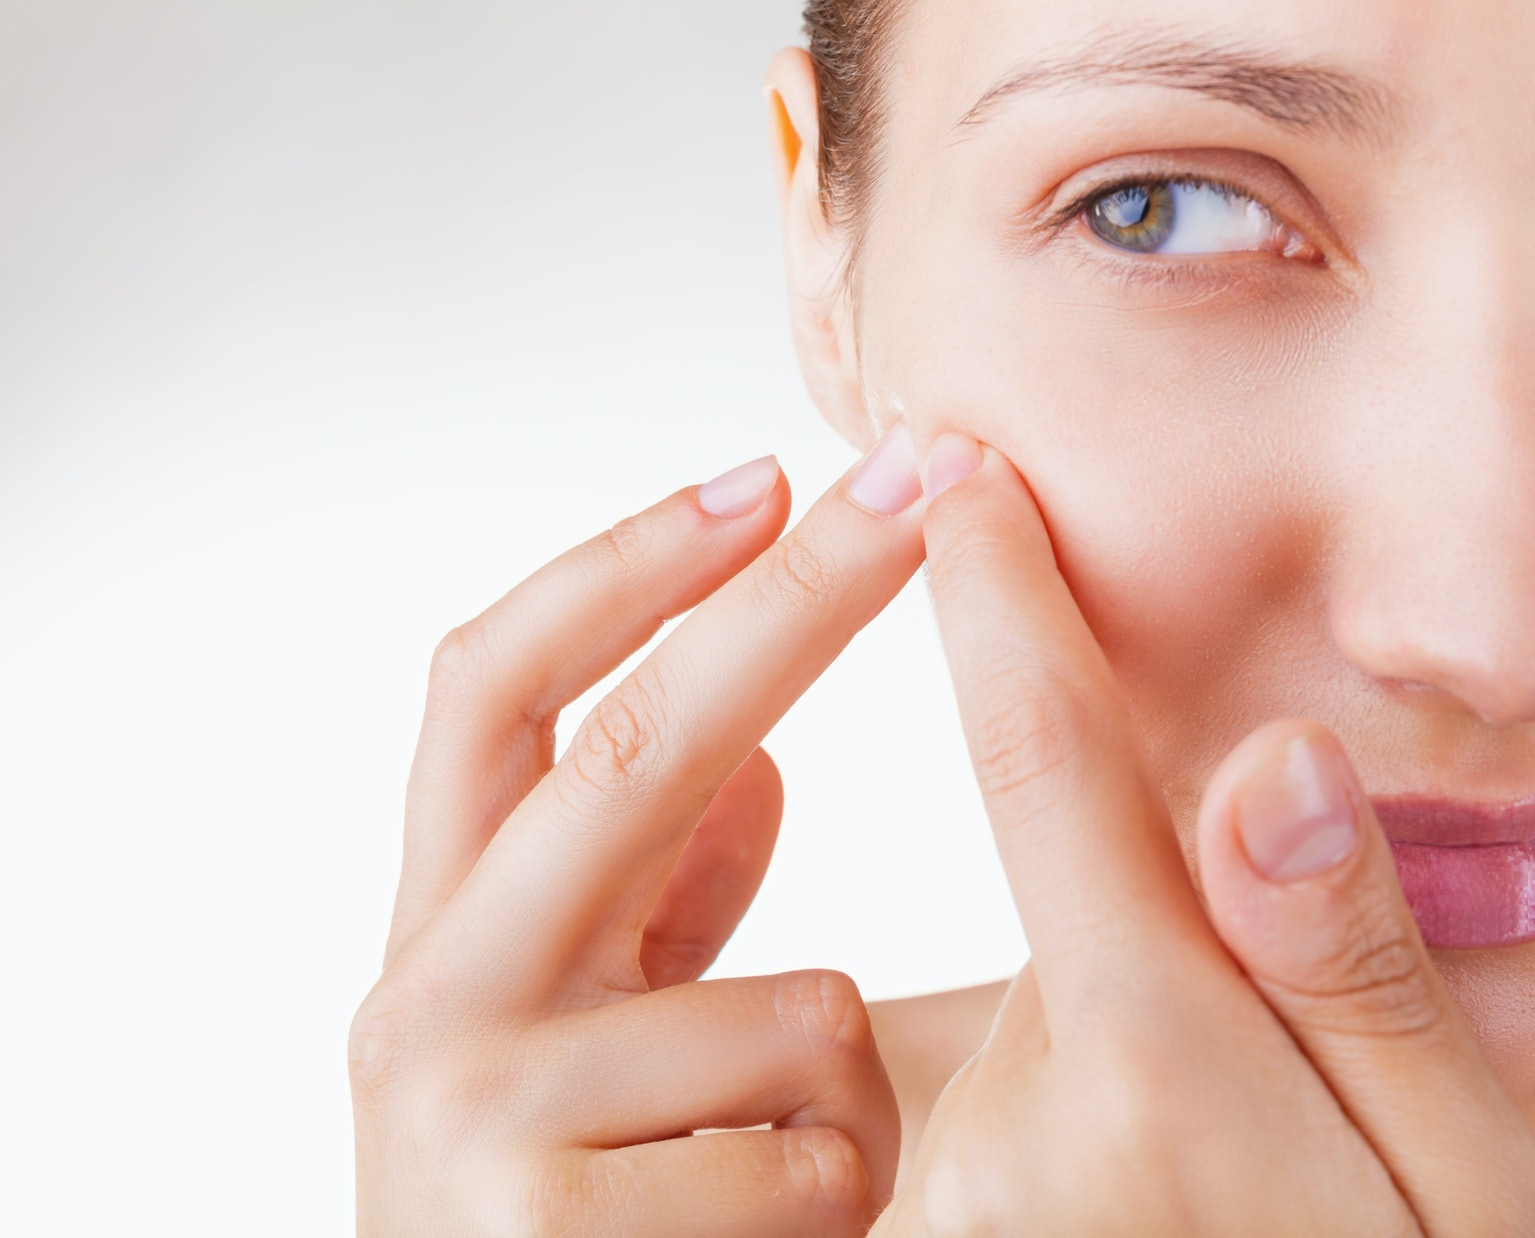 5 Ways To Care For Your Skin After Popping A Pimple